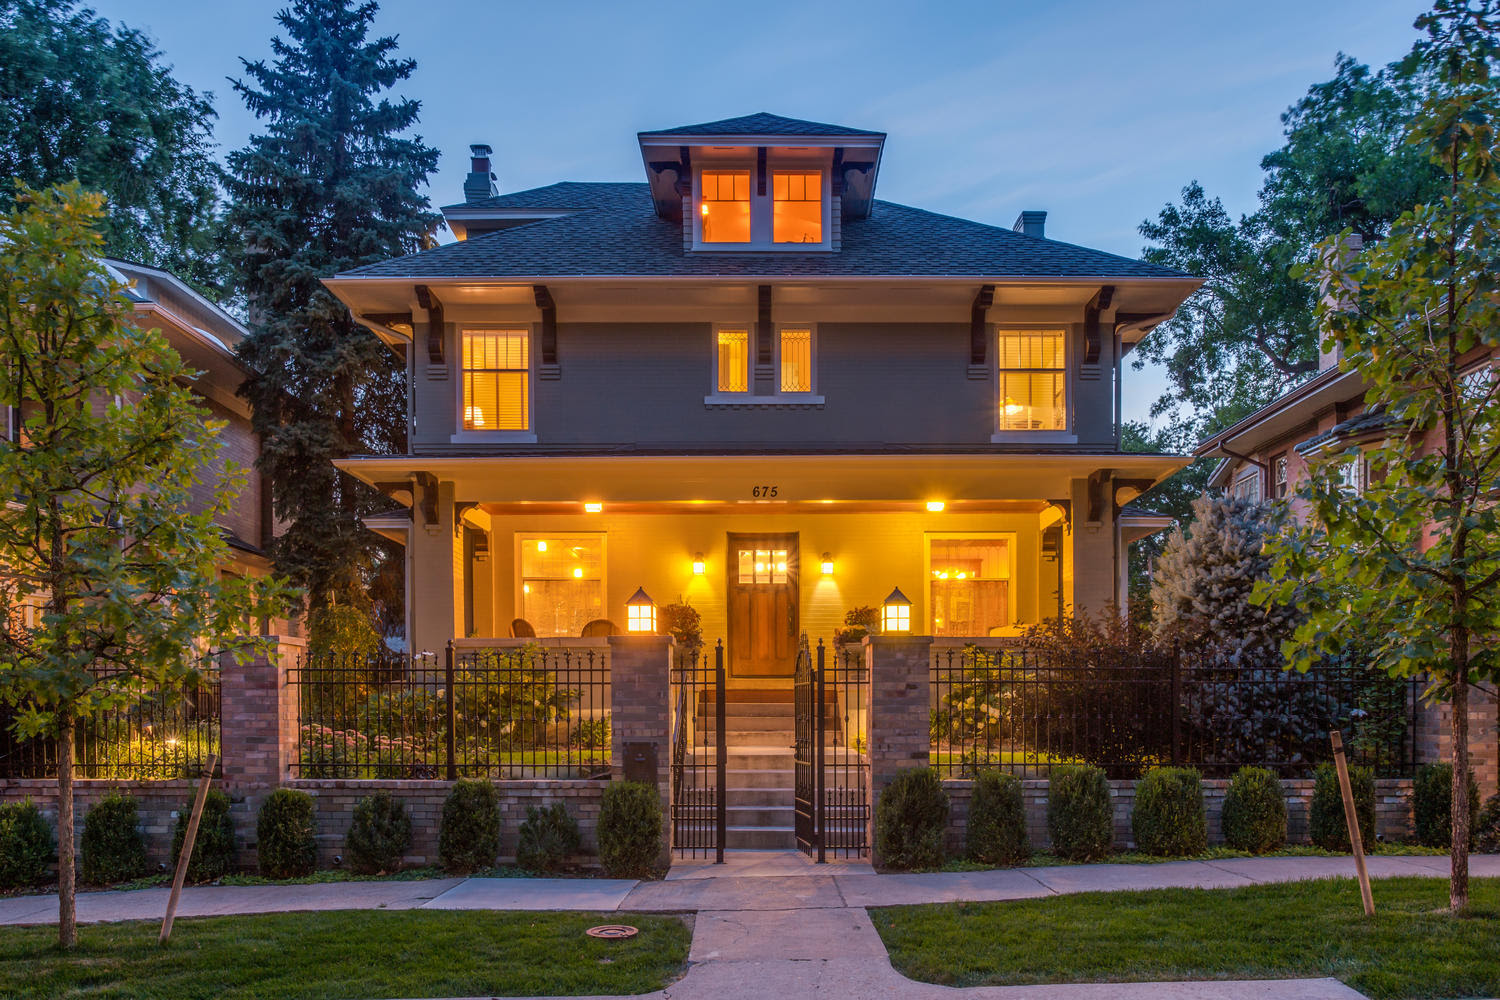 Denver homes for sale Homes for sale in Denver CO HomeGain  Contoh Gambar Rumah